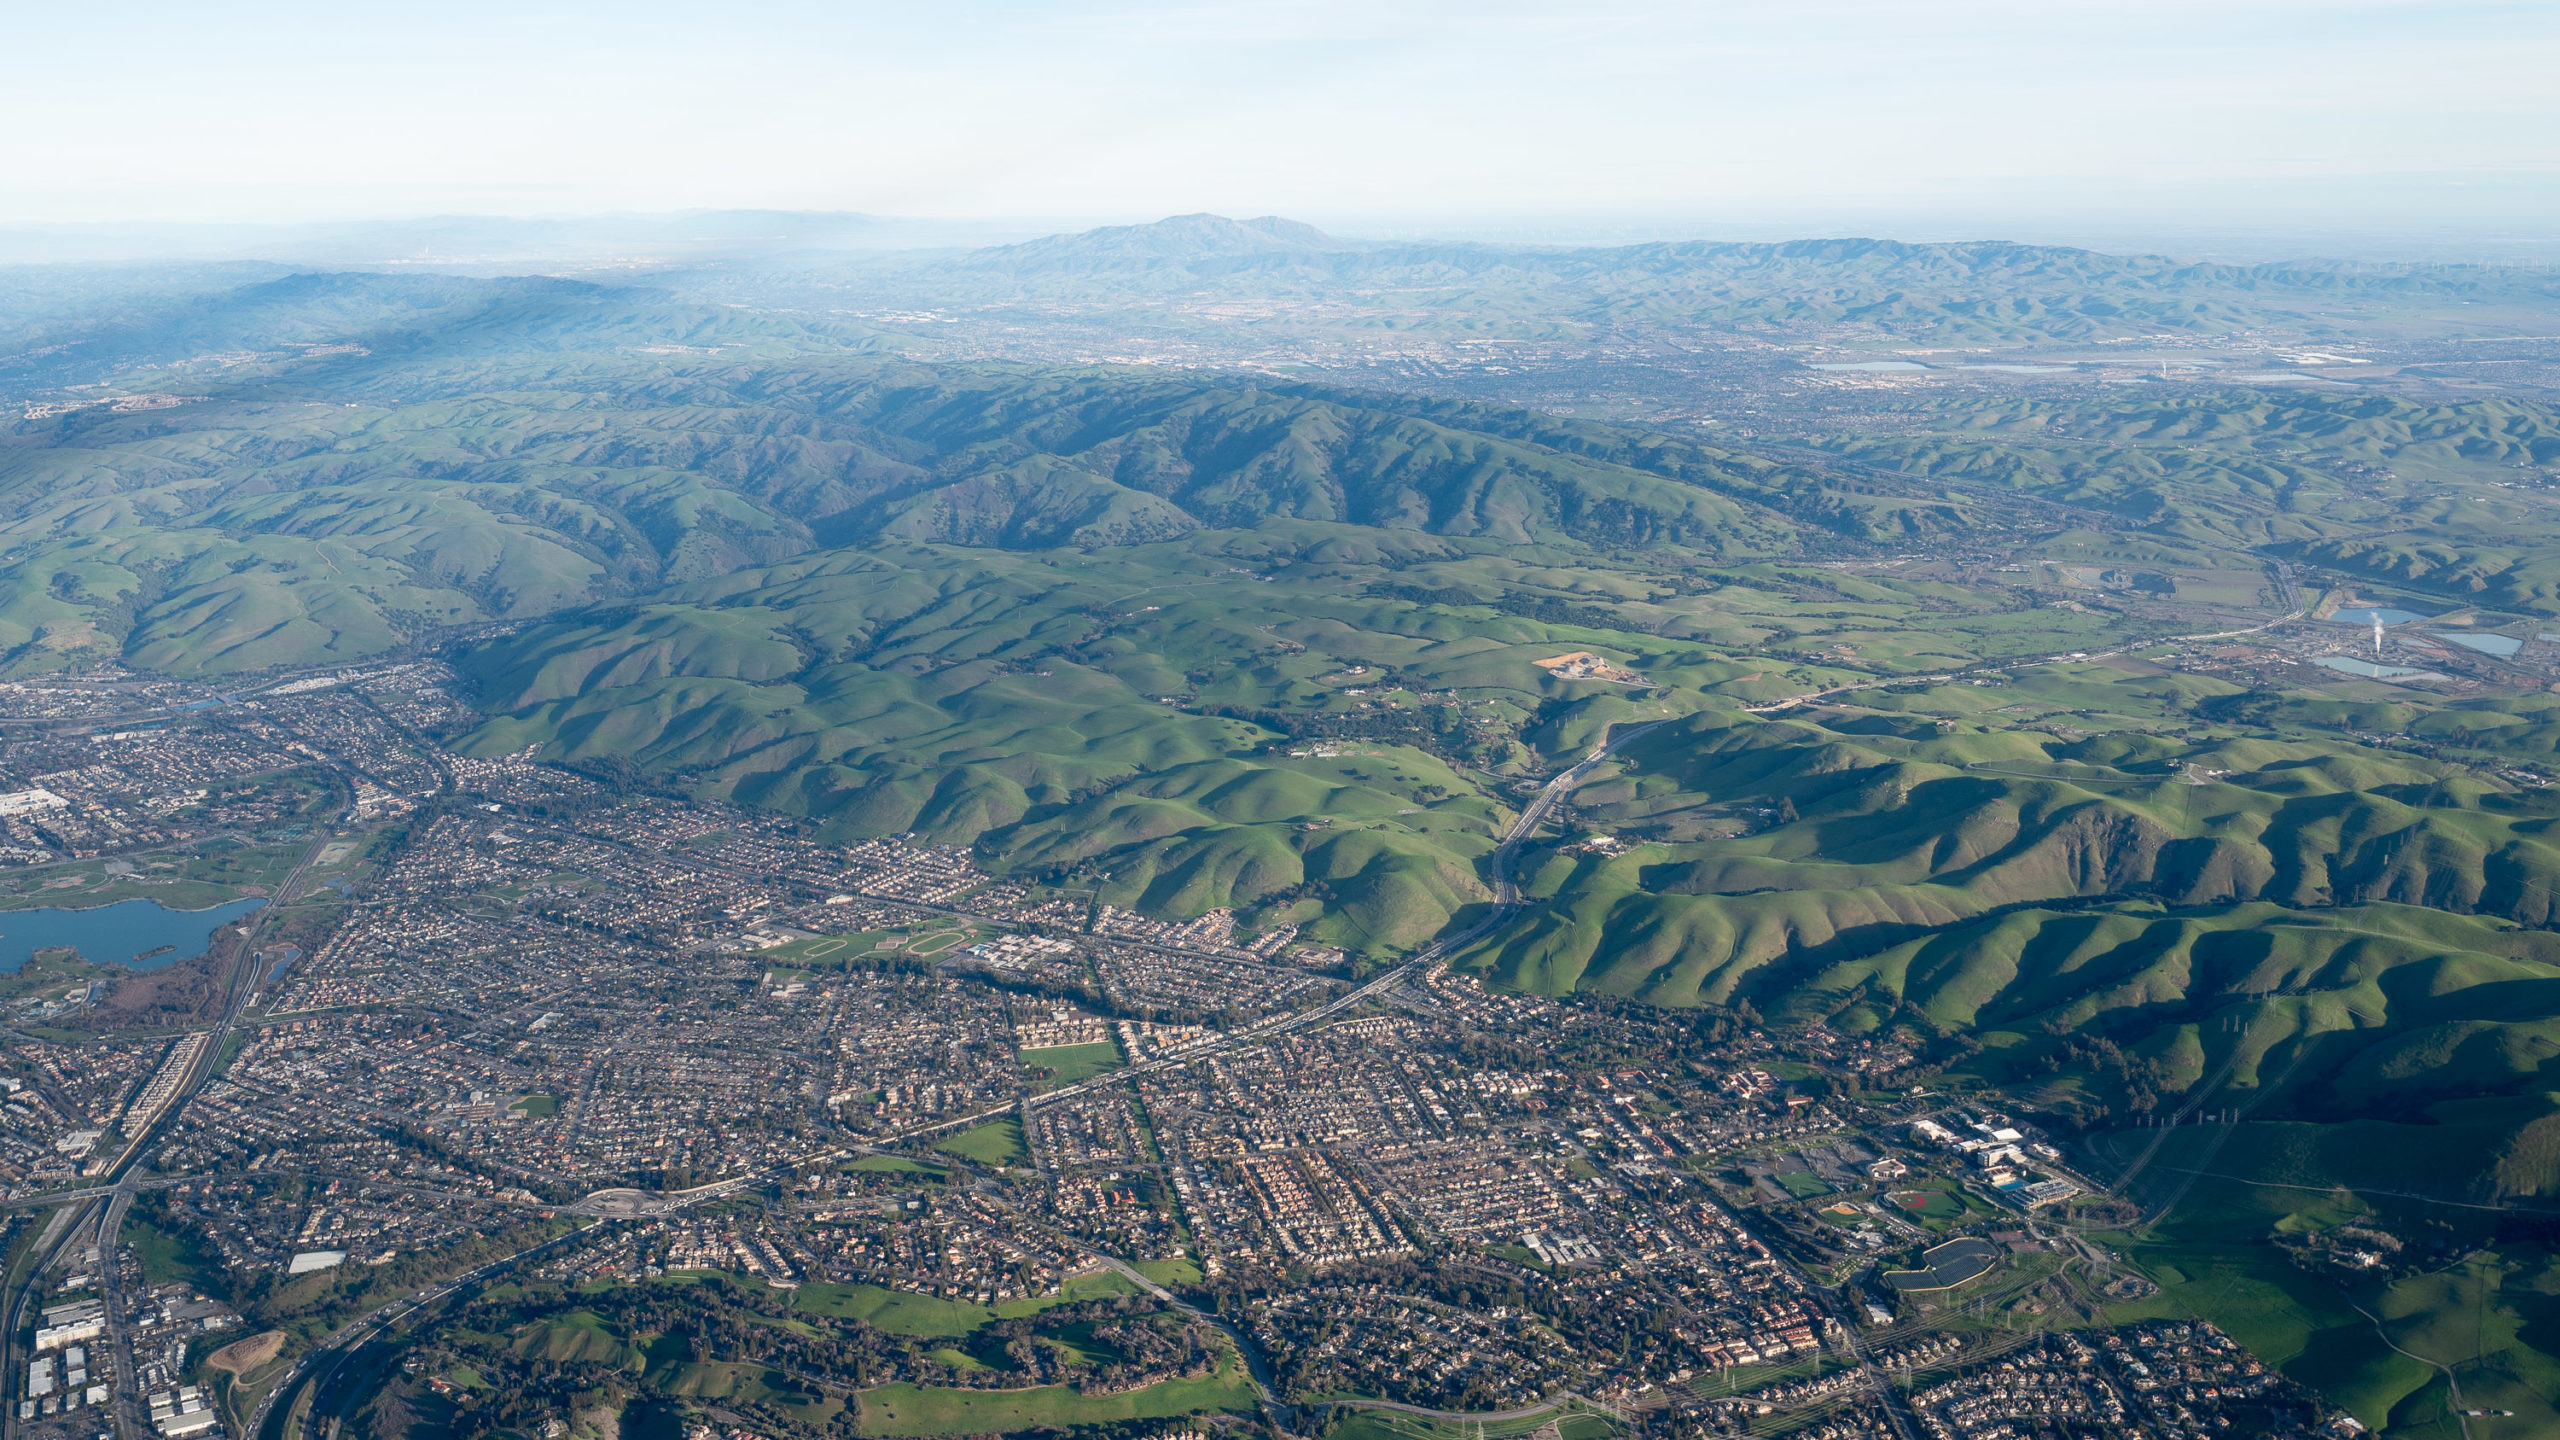 view from plane of California foothills and suburbs